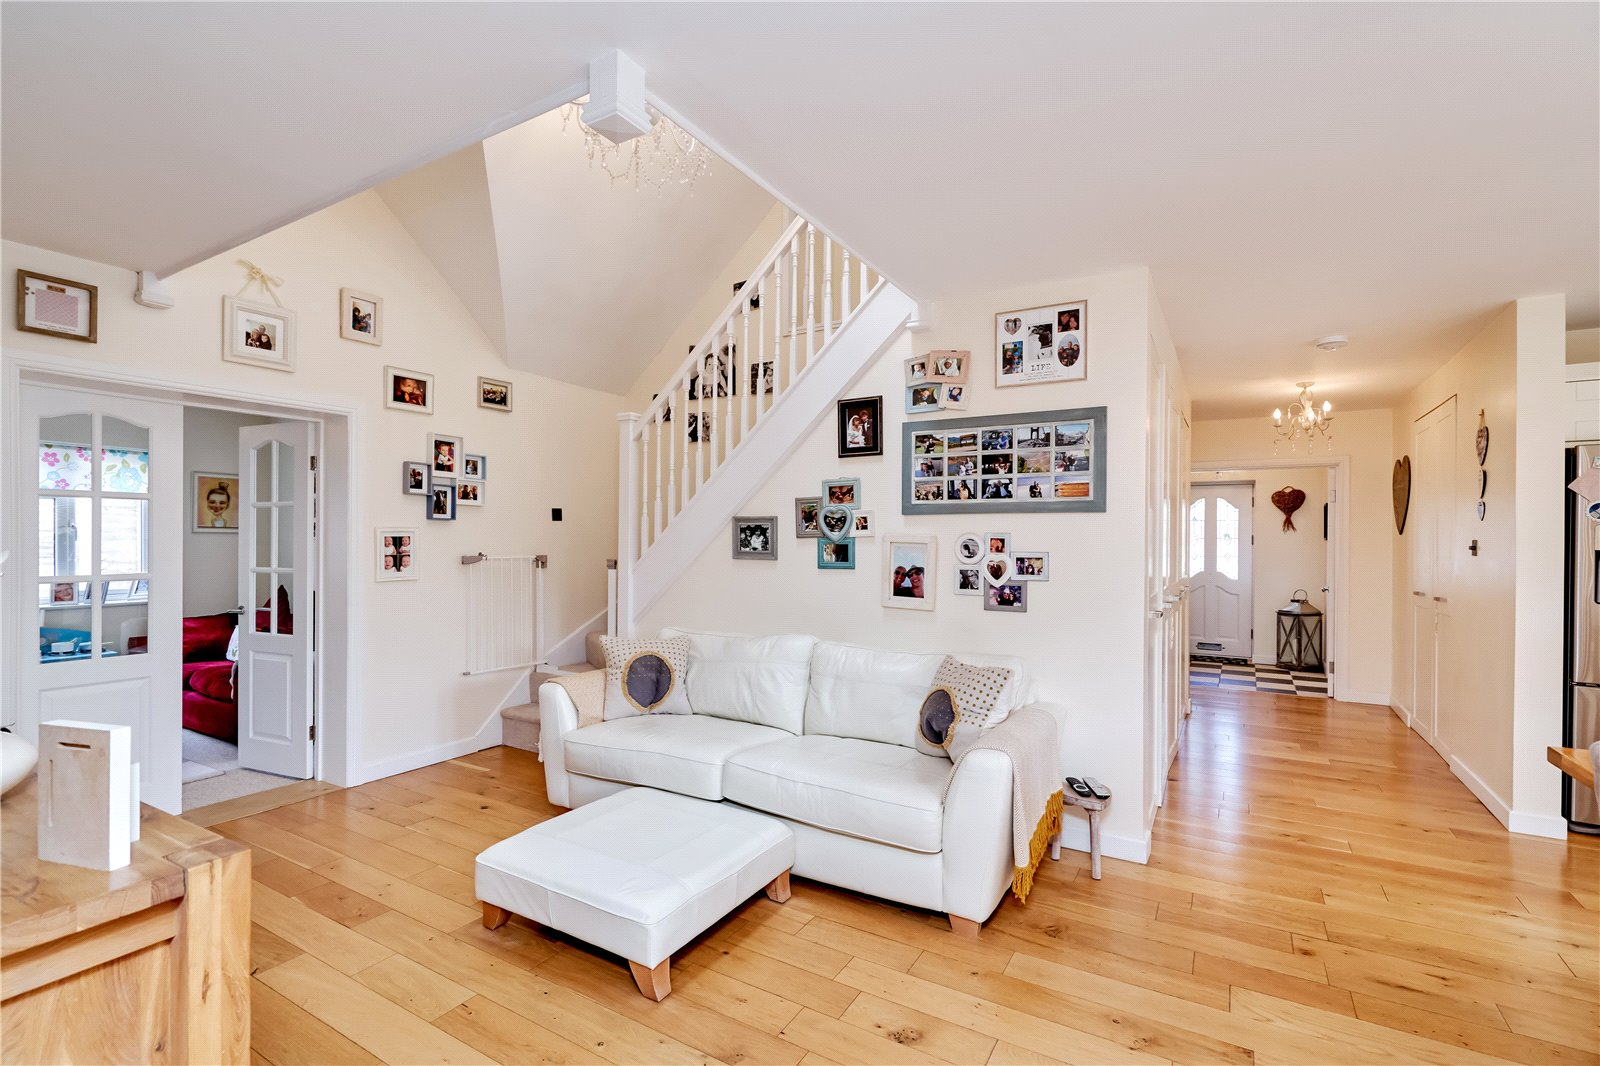 4 bed house for sale in Welwyn, AL6 0QG  - Property Image 5